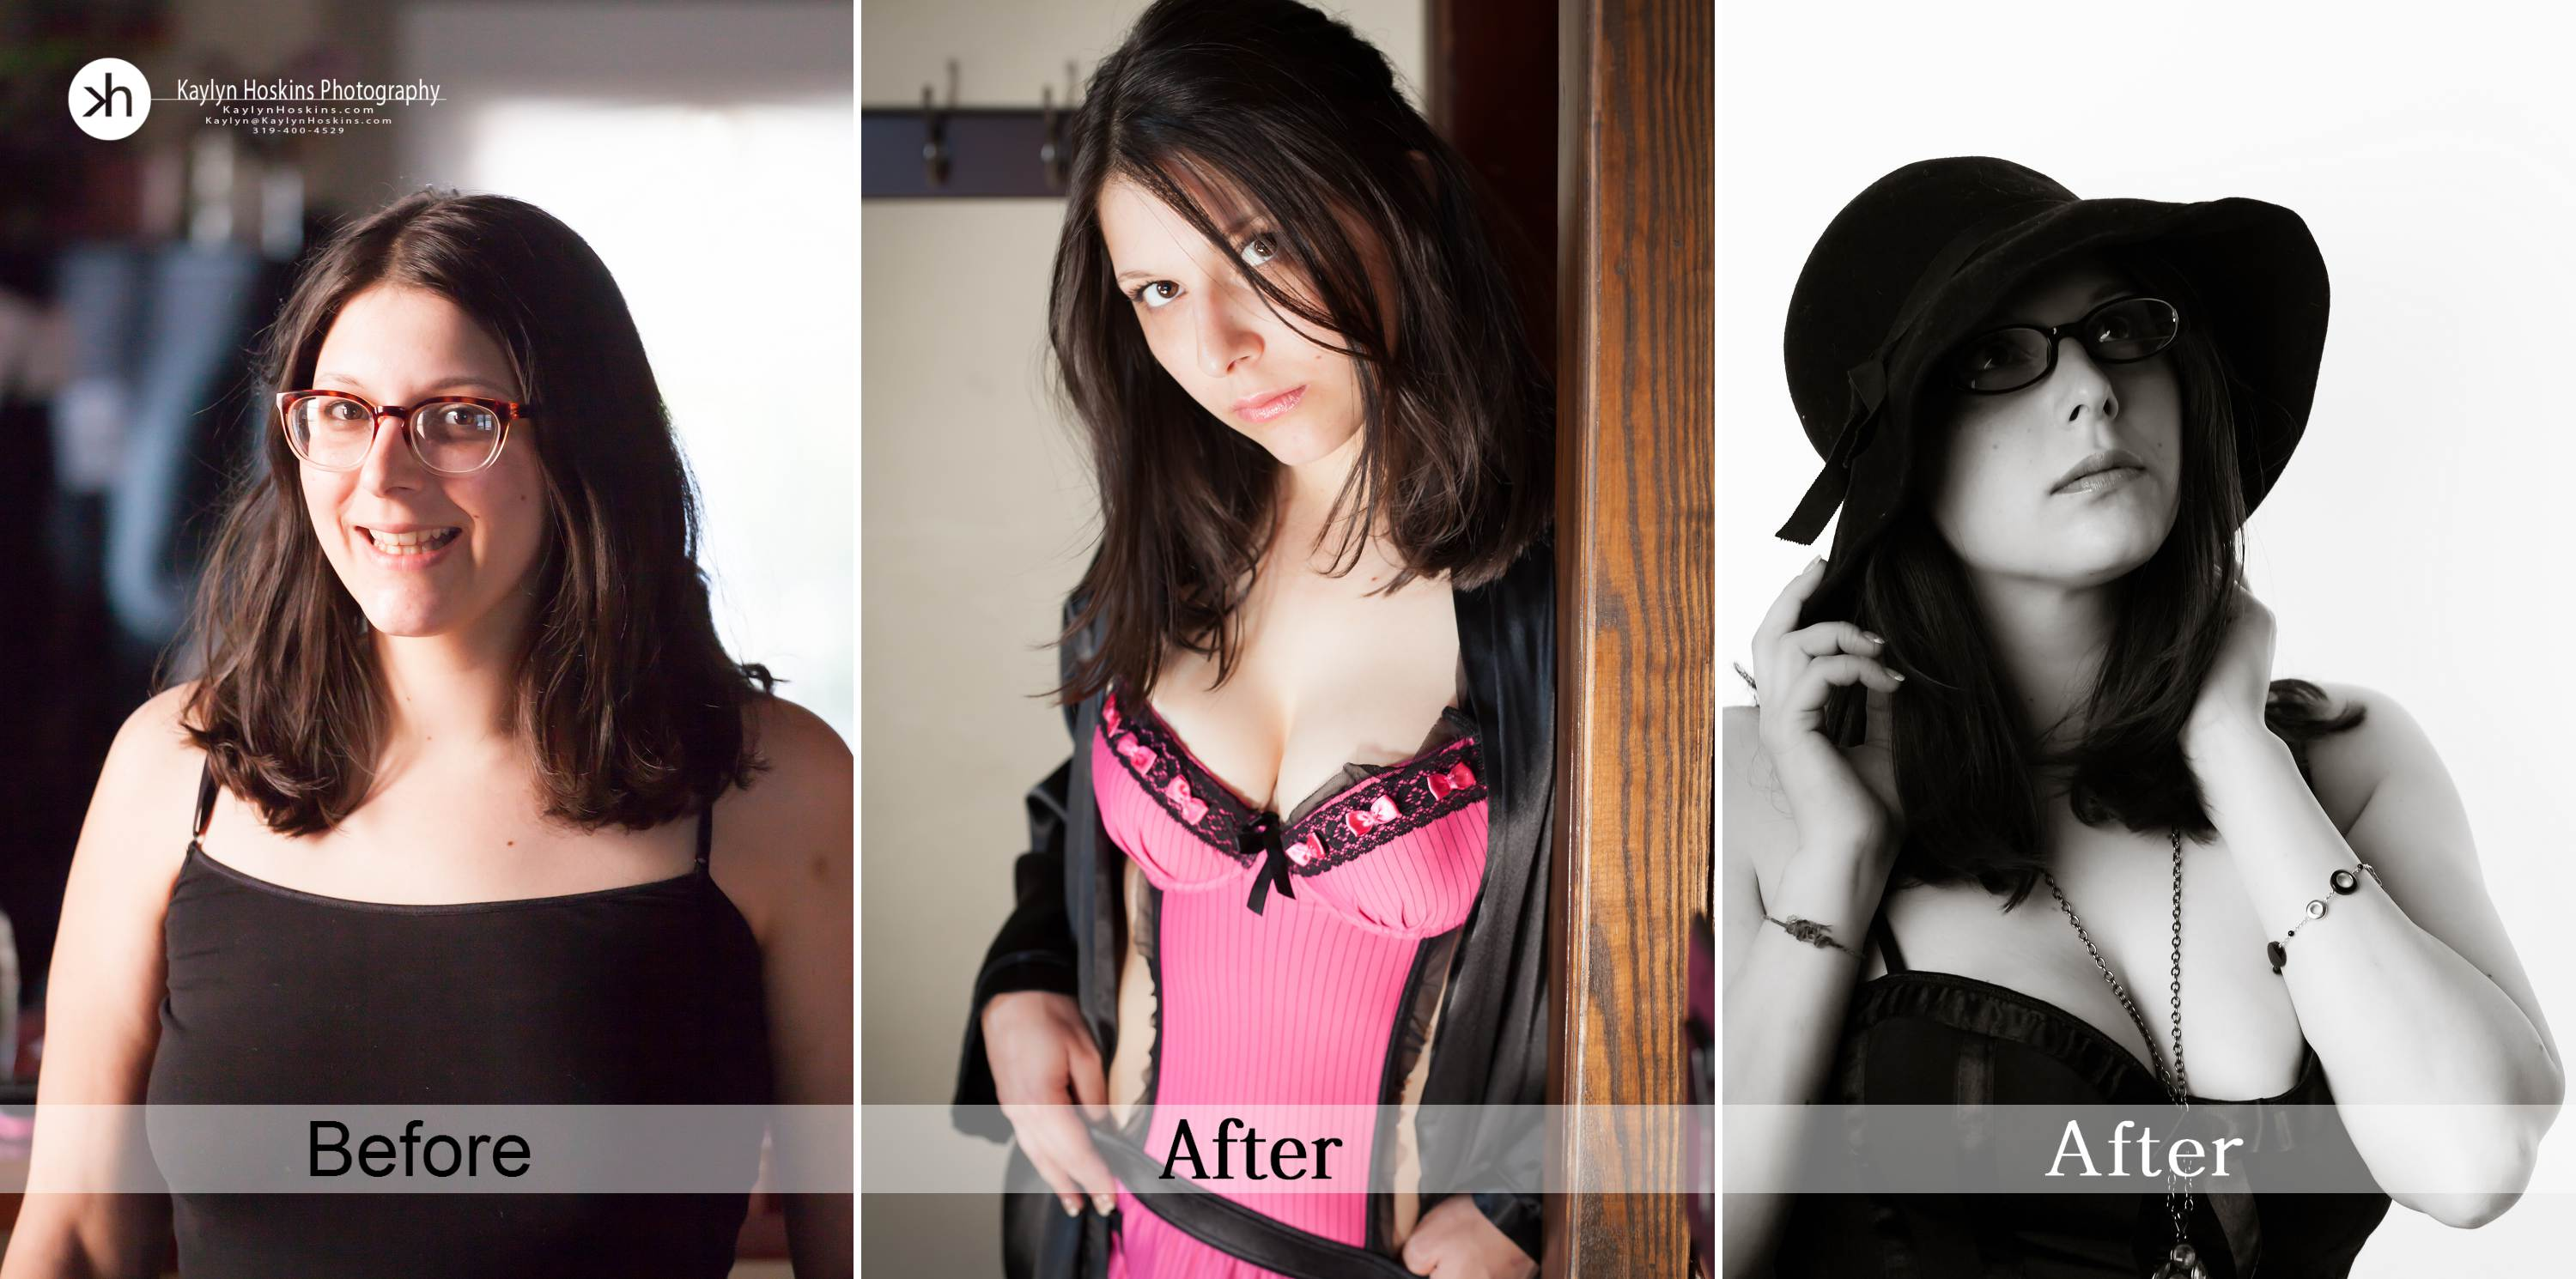 Before After collage of boudoir client